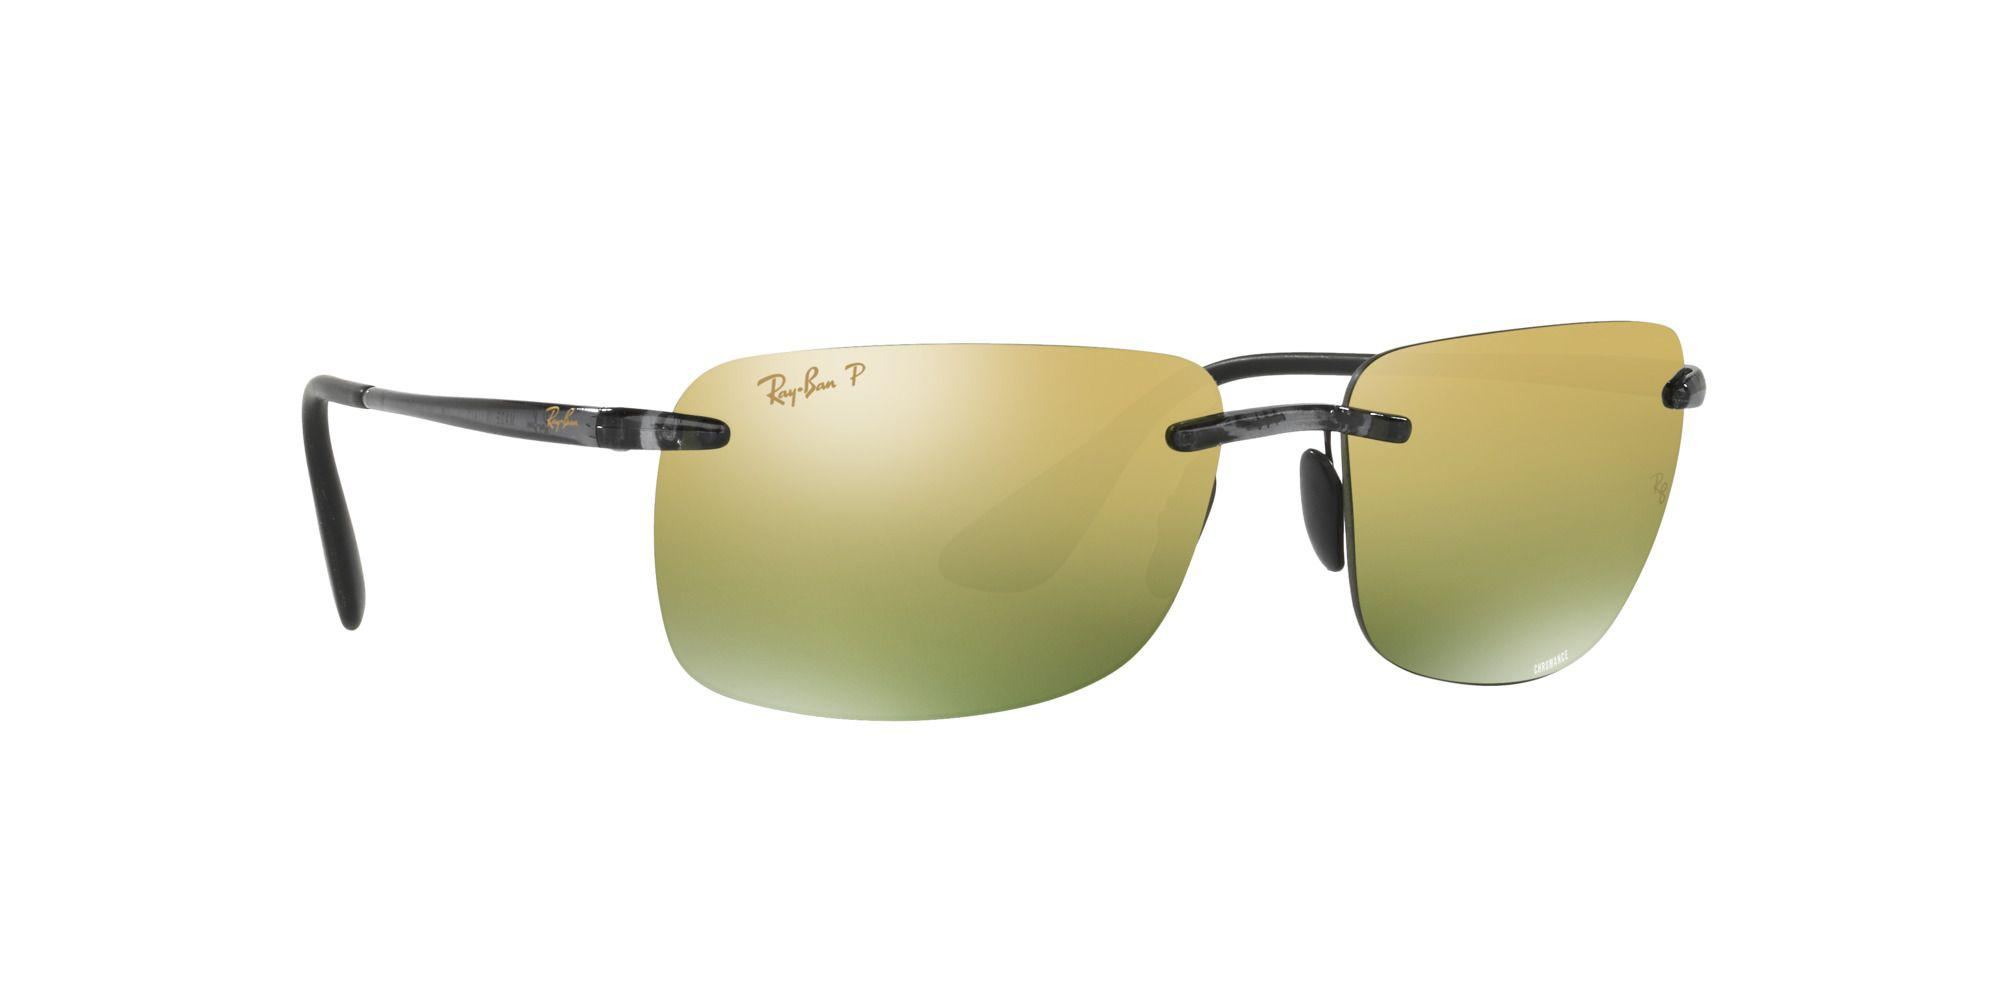 b632bd7dd81 Ray-Ban Shiny Grey Rb4255 Square Sunglasses in Gray for Men - Lyst